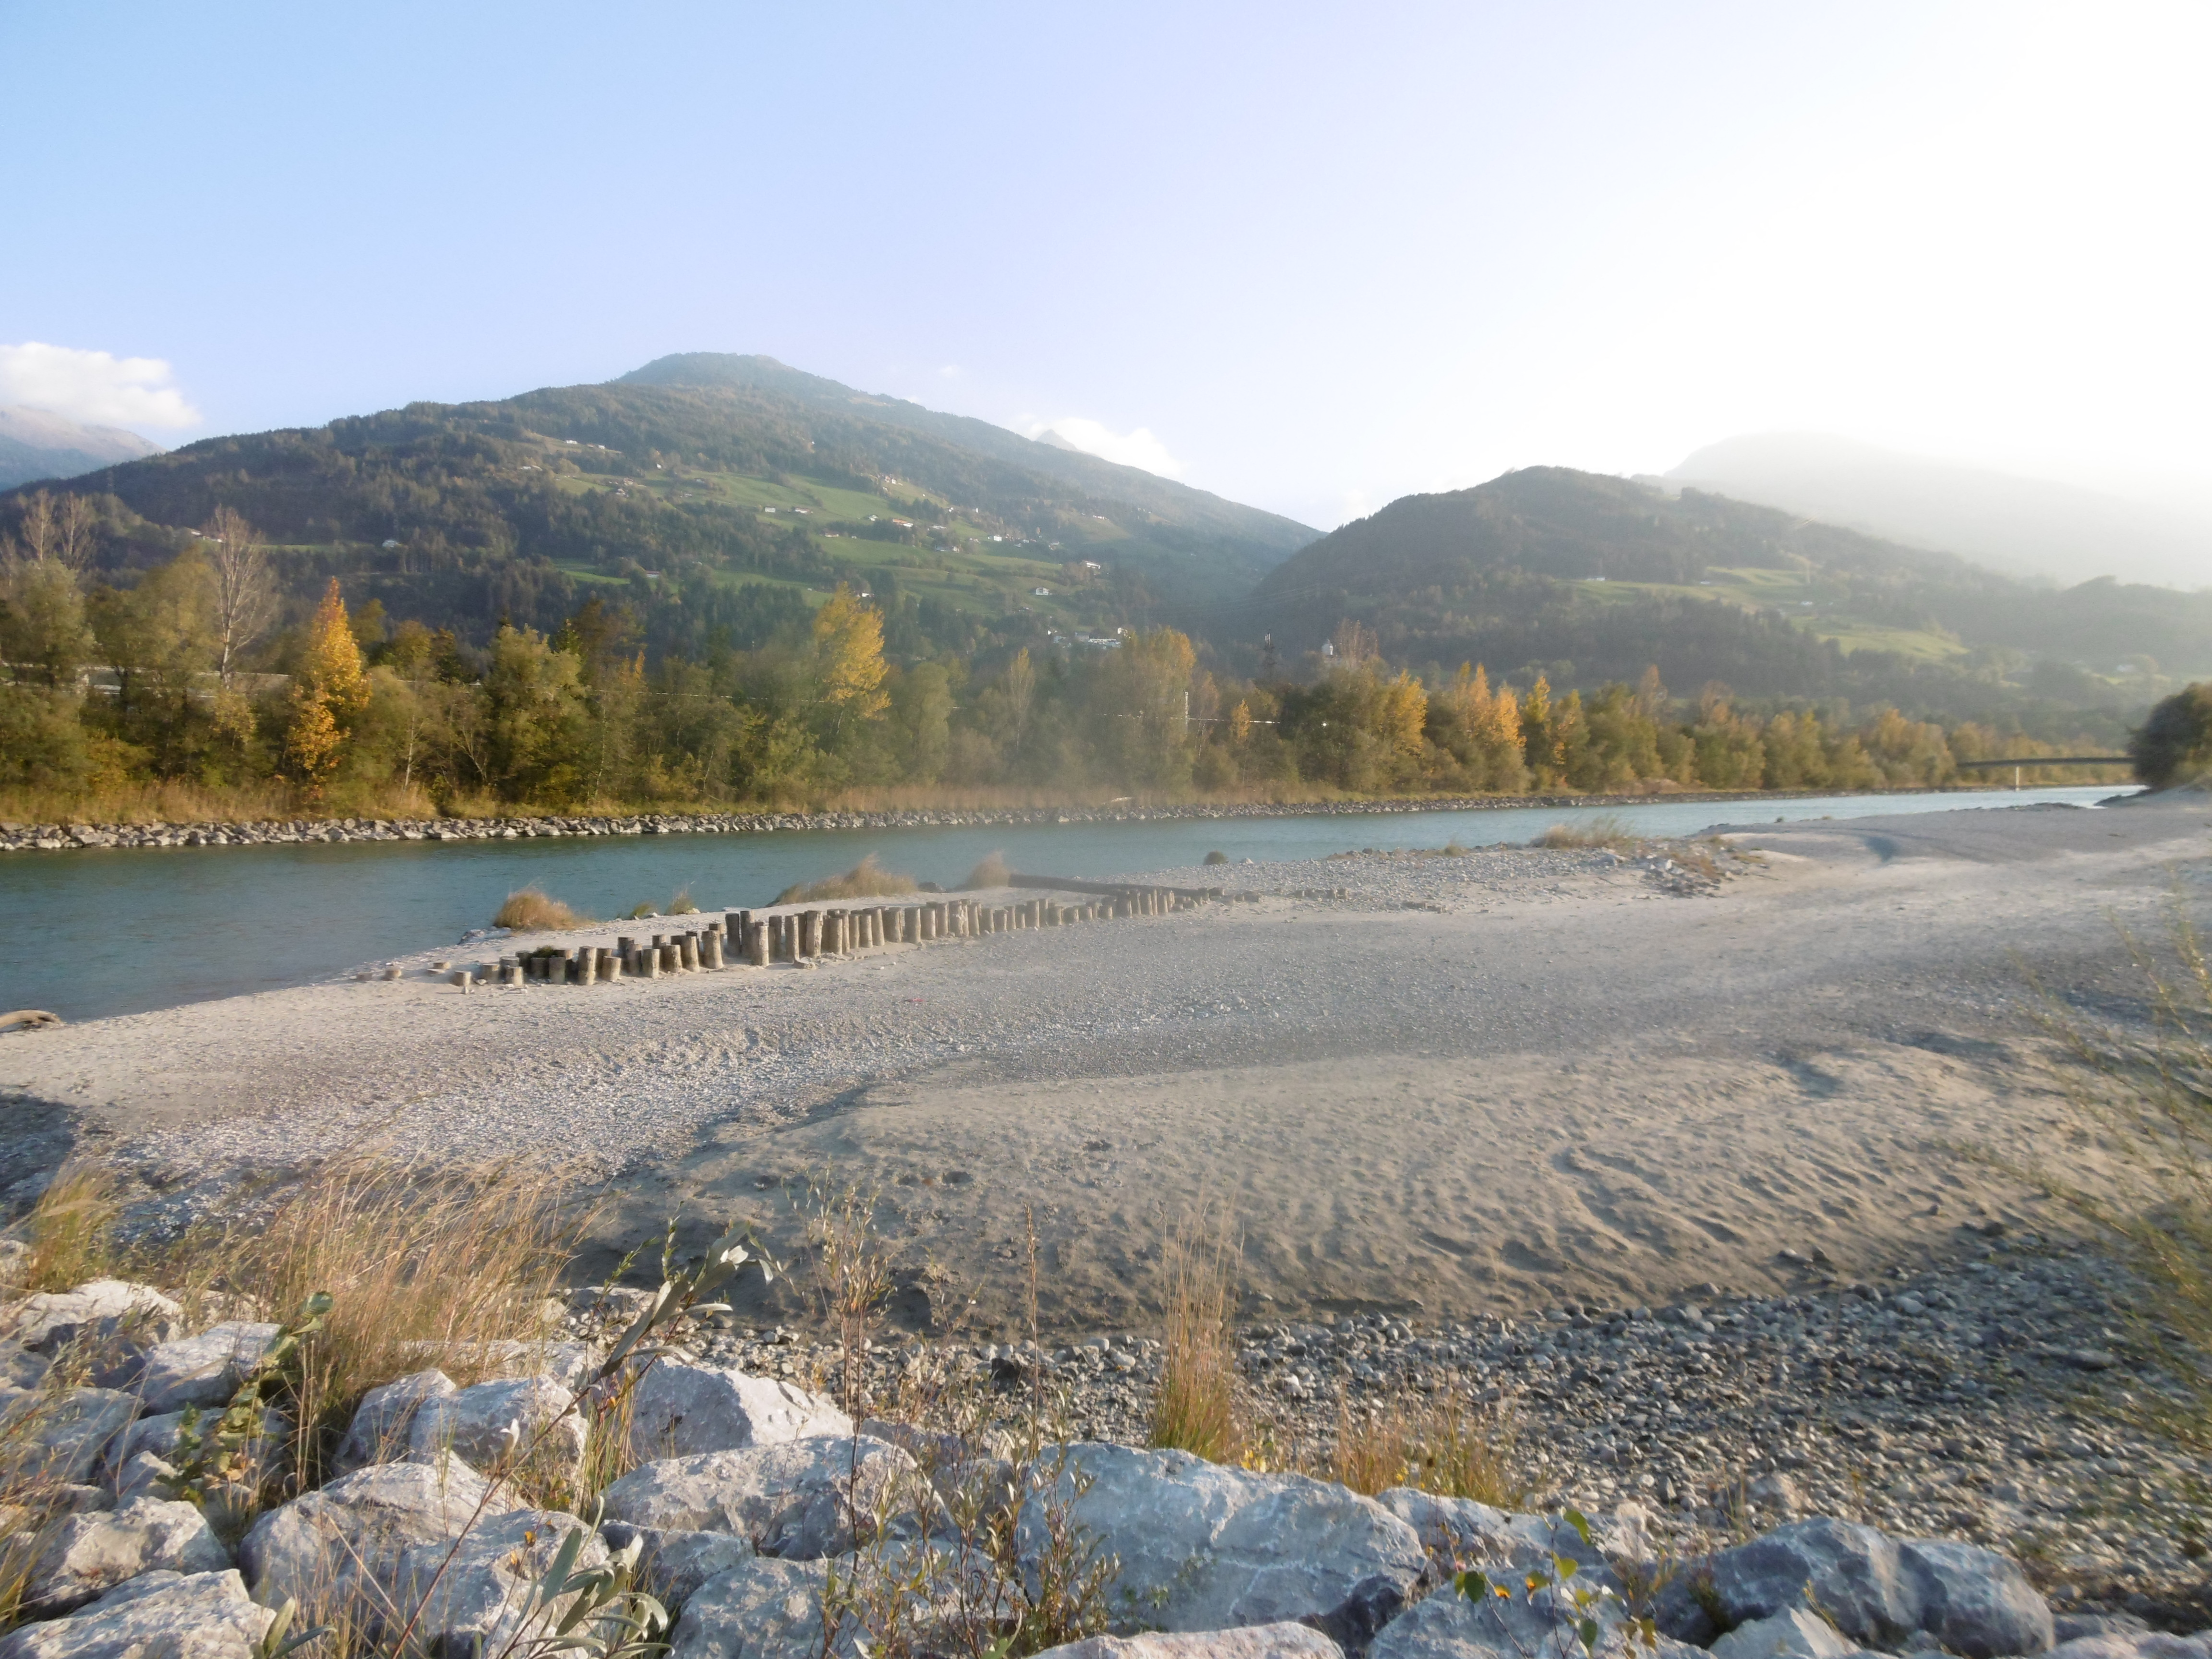 A broad, sandy beach reinforced with rows of piles